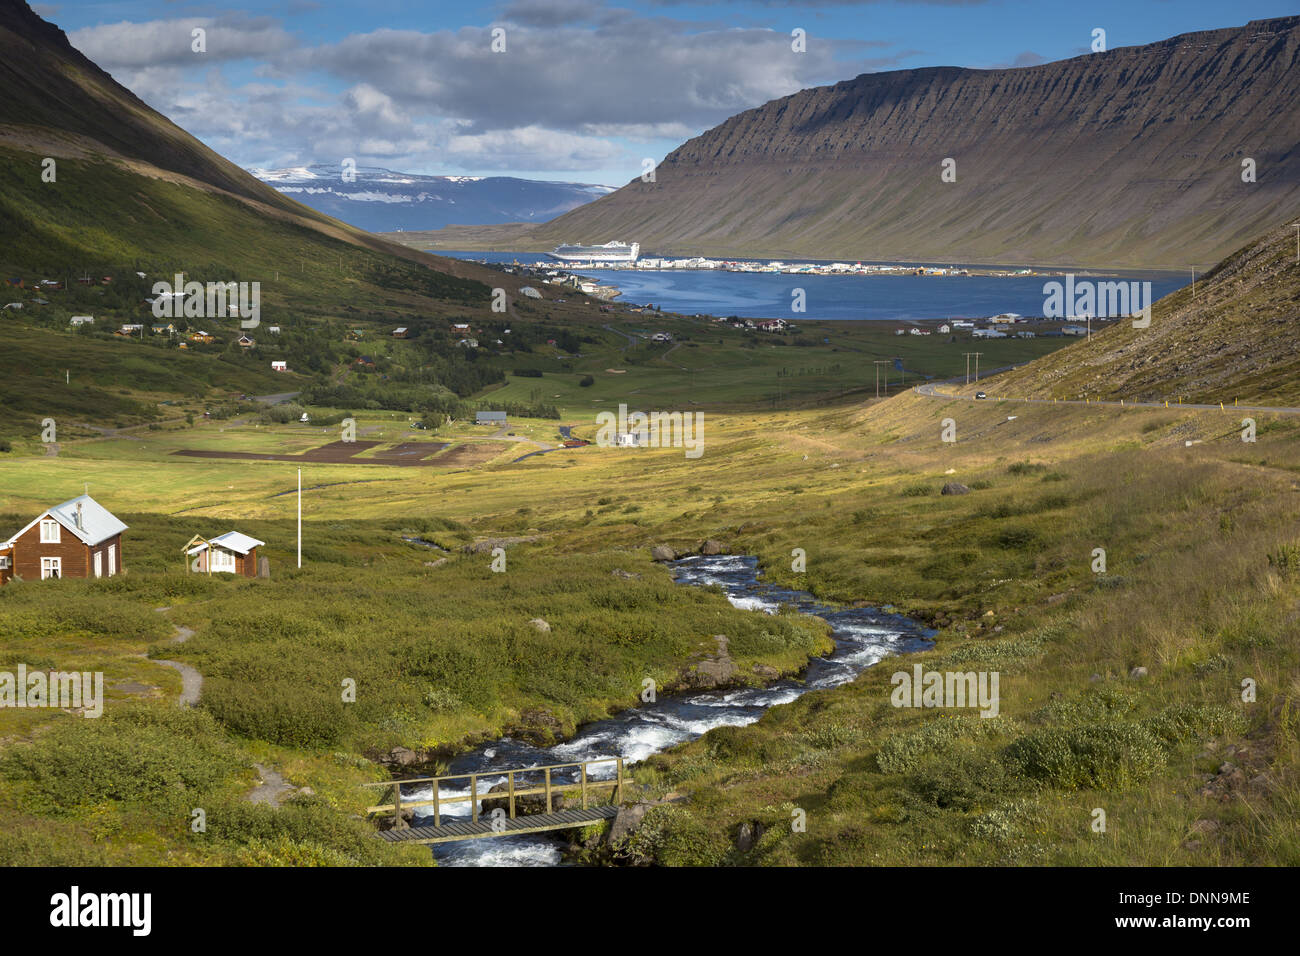 Iceland Isafjordur Westfjords scenic view with Caribbean Princess cruise ship anchored off the town - Stock Image